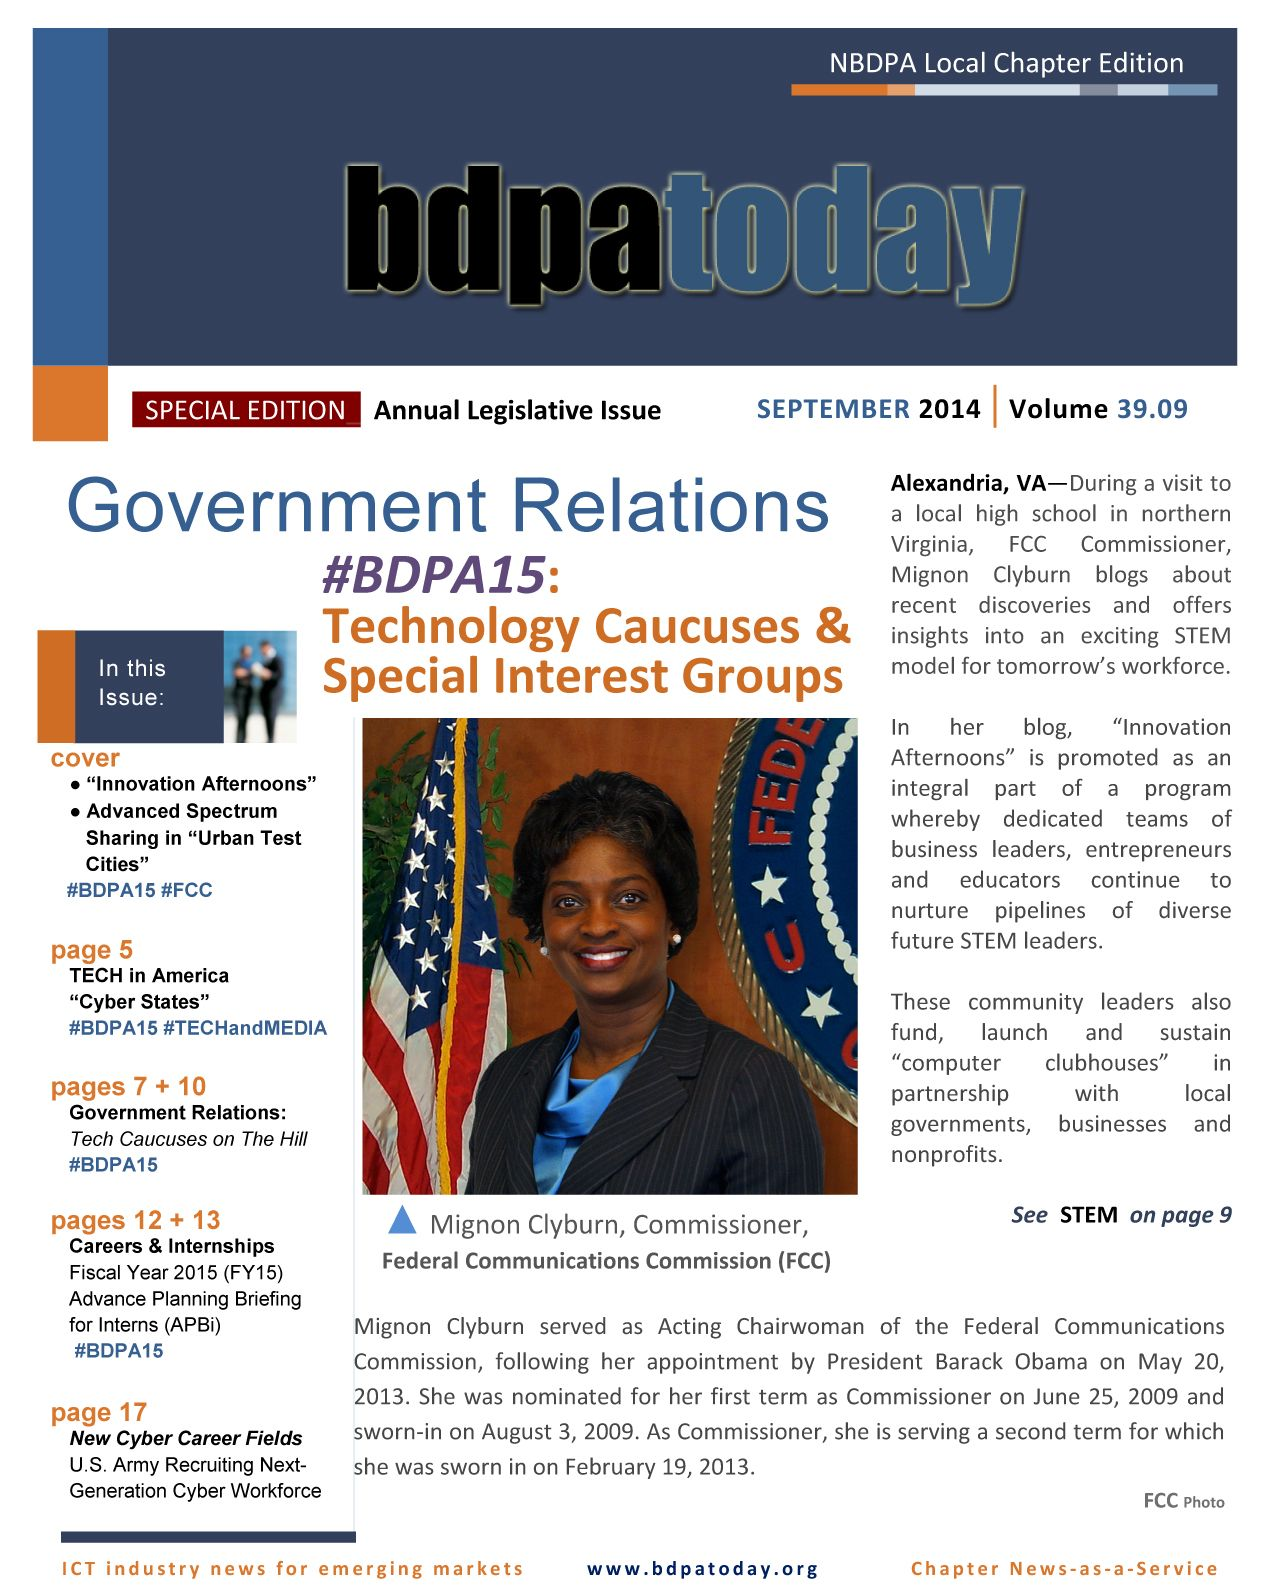 Your annual BDPA legislative edition of bdpatoday covers ICT industry and regulatory items for BDPA Members, Small Businesses and HBCUs from various Technology Caucuses on The Hill and the FCC. Join or renew, today. To order re-prints or high resolution copies, visit ► https://bdpatoday.org/caas.html